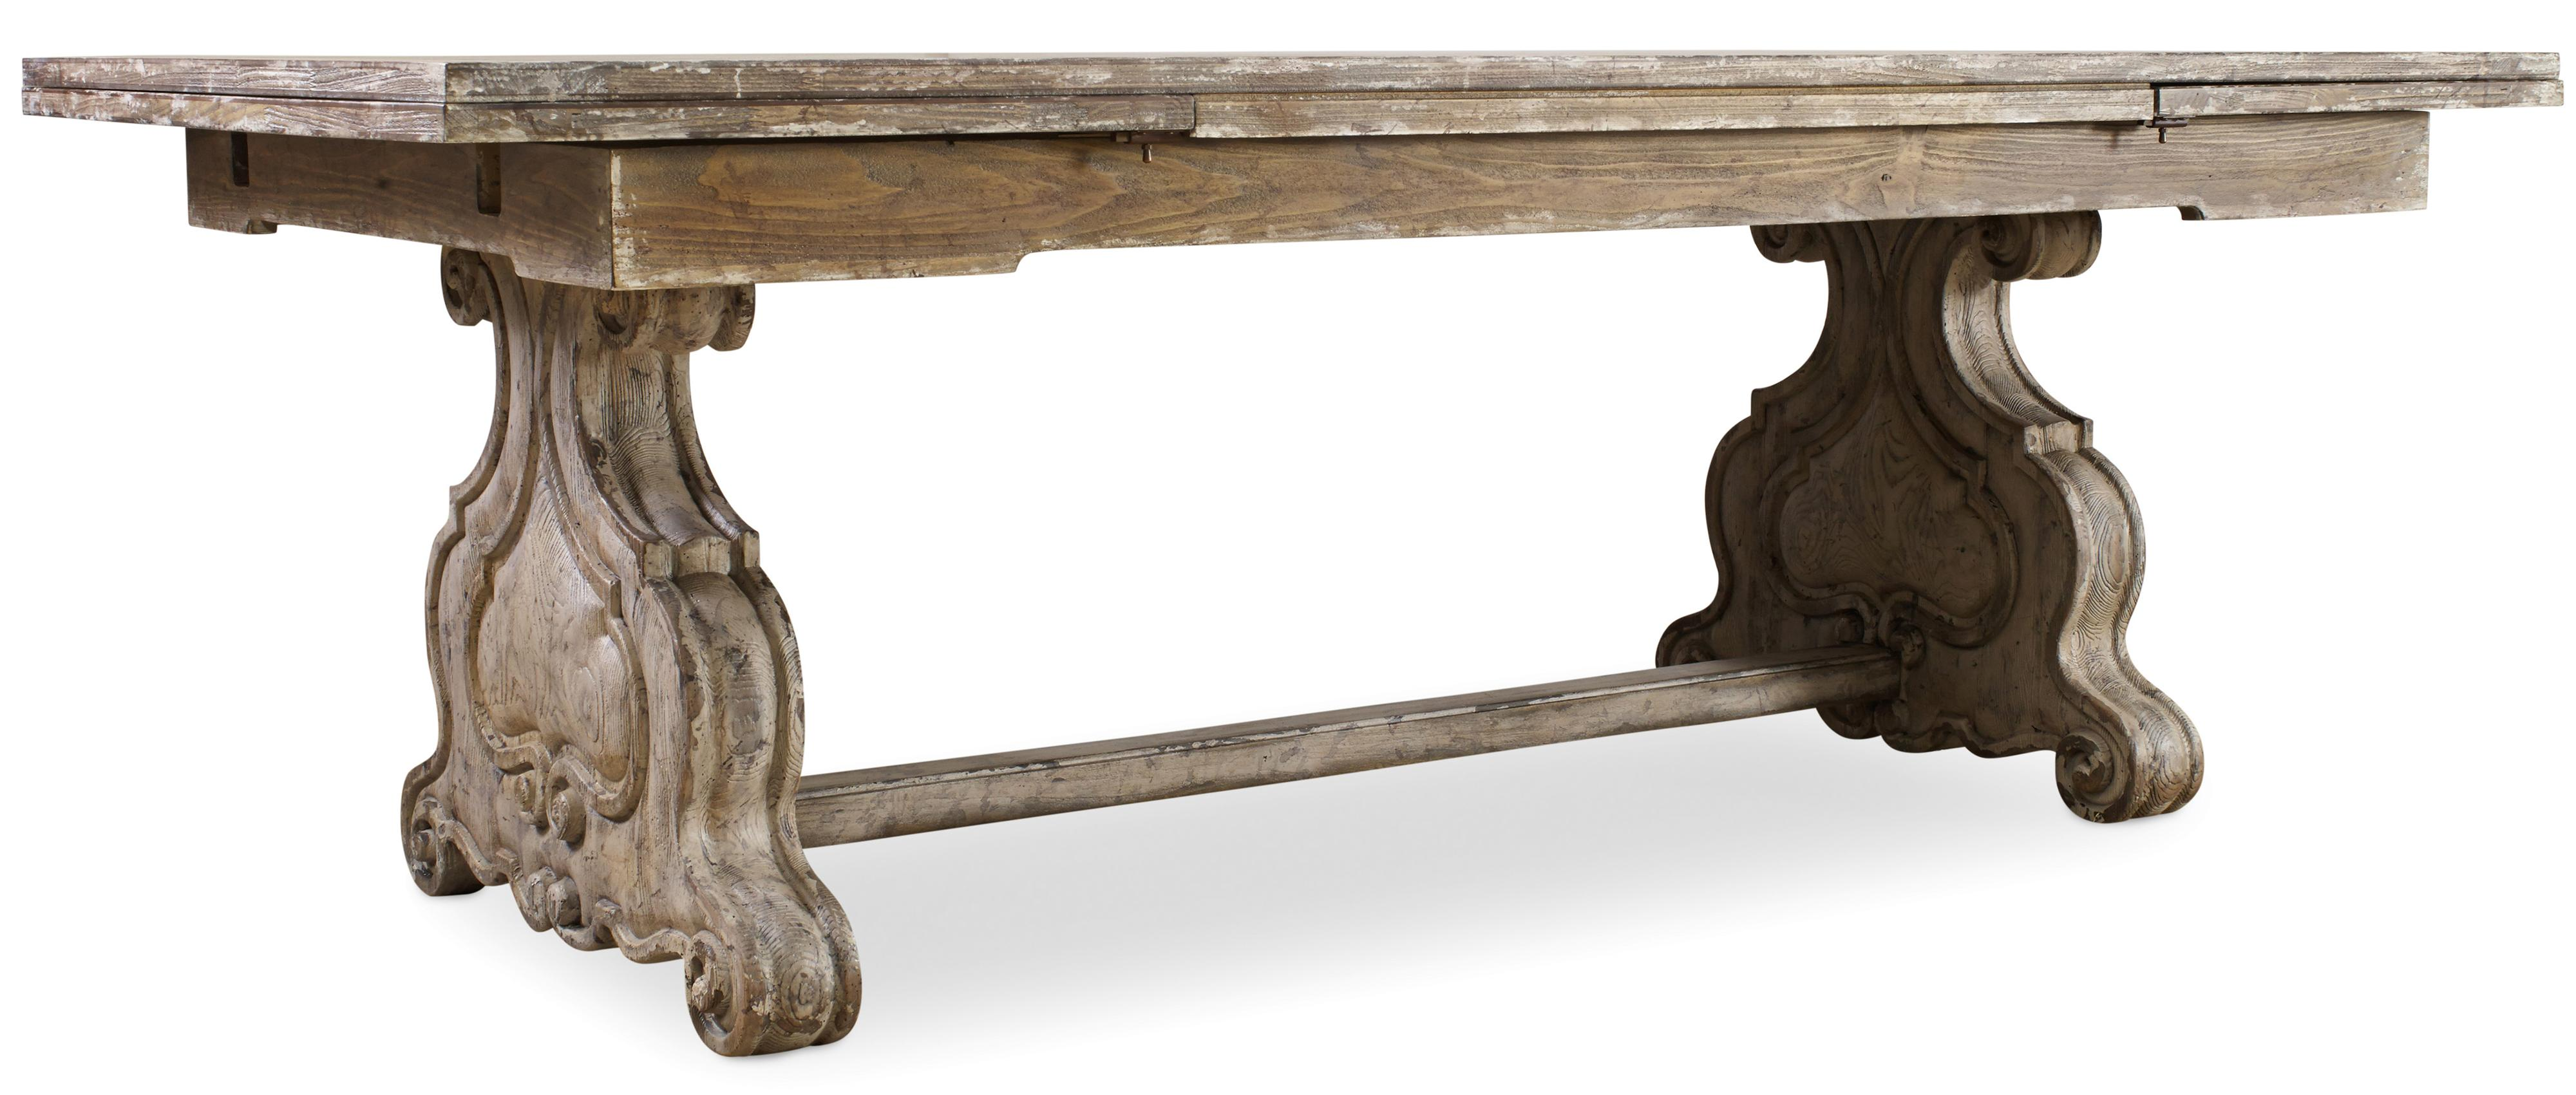 Chatelet Refectory Rectangle Trestle Dining Table by Hooker Furniture at Alison Craig Home Furnishings